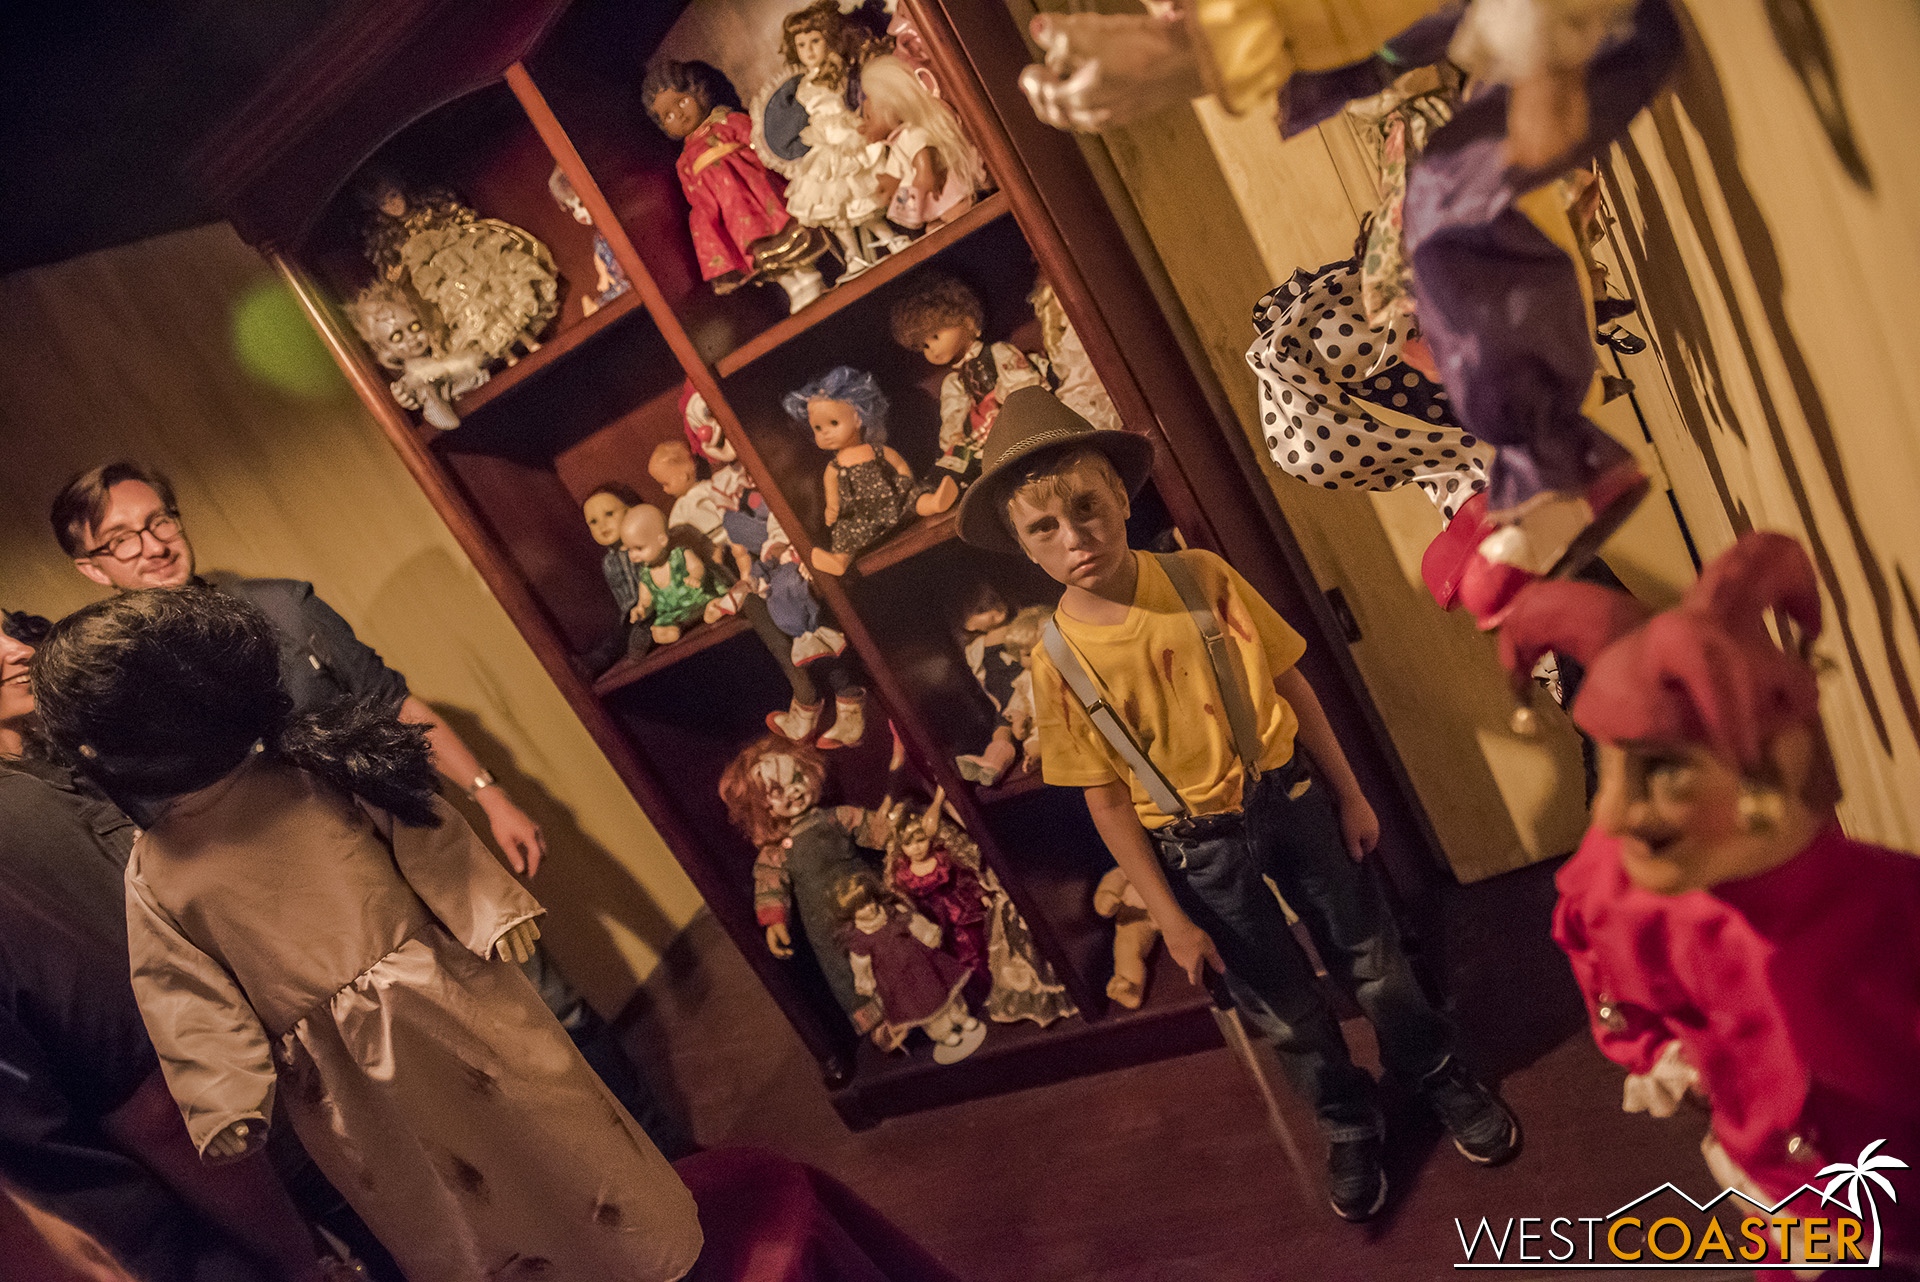 A doll-phobic's worst nightmare.